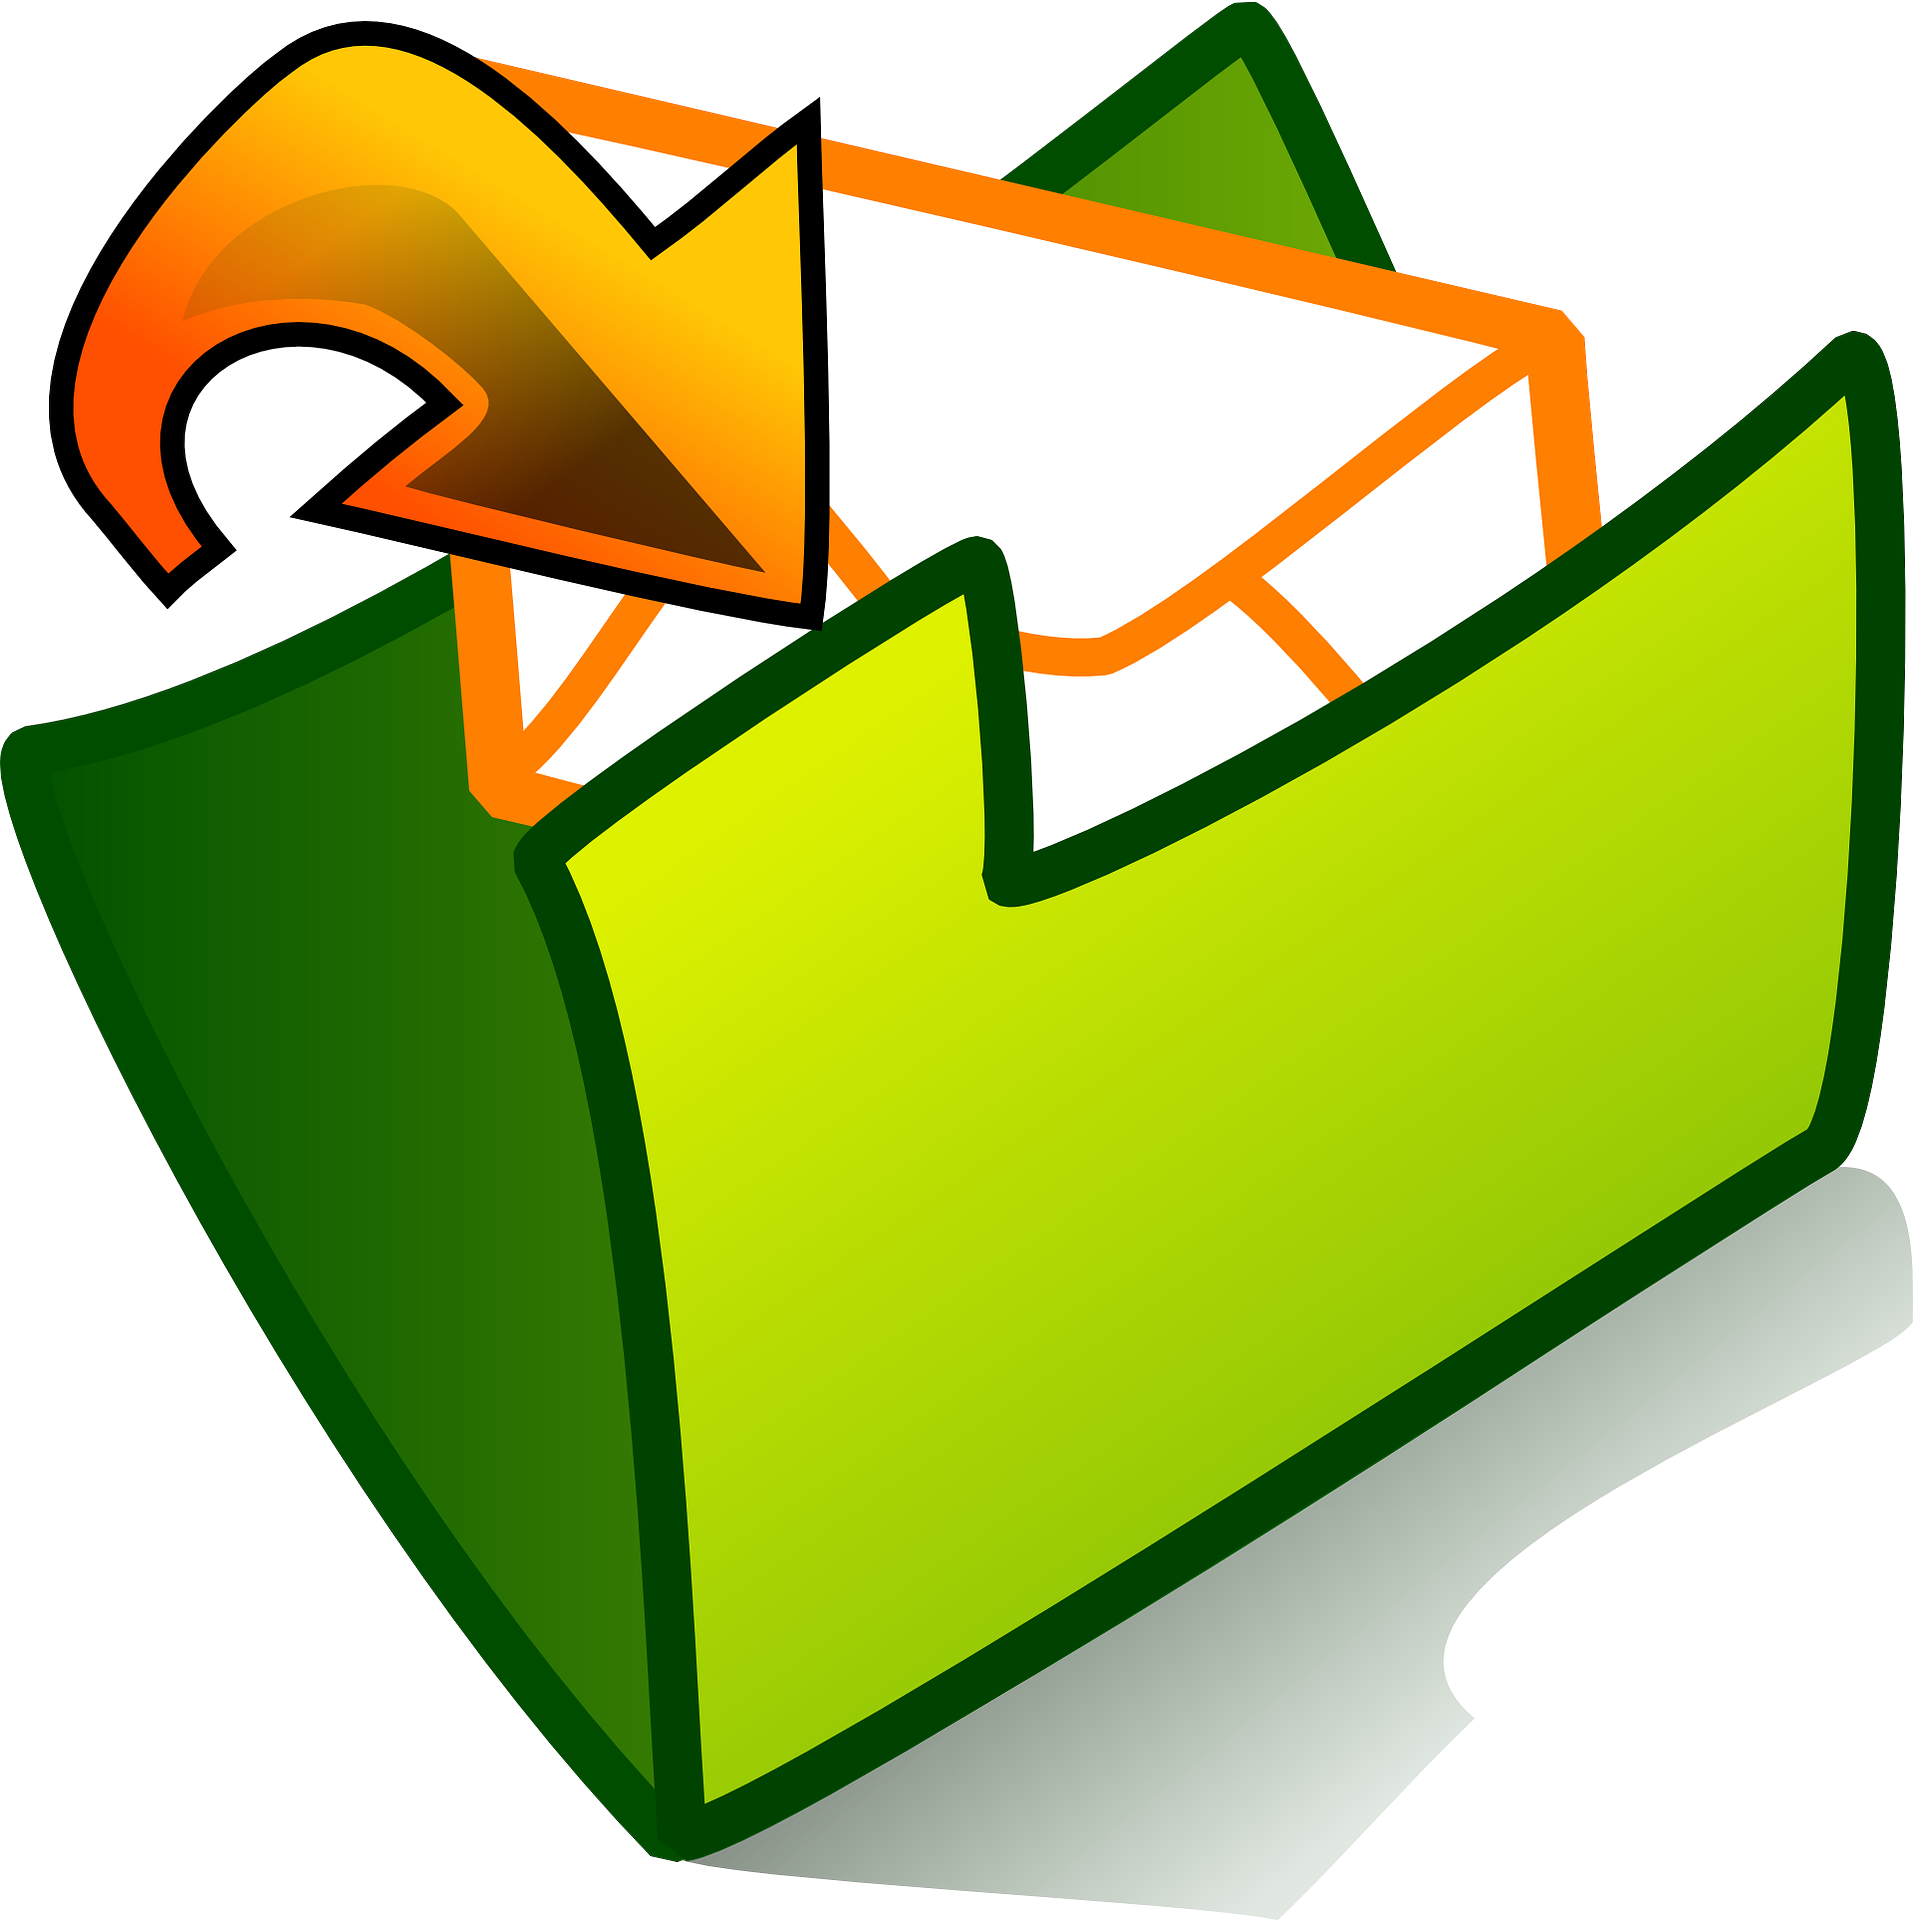 email clipart lost